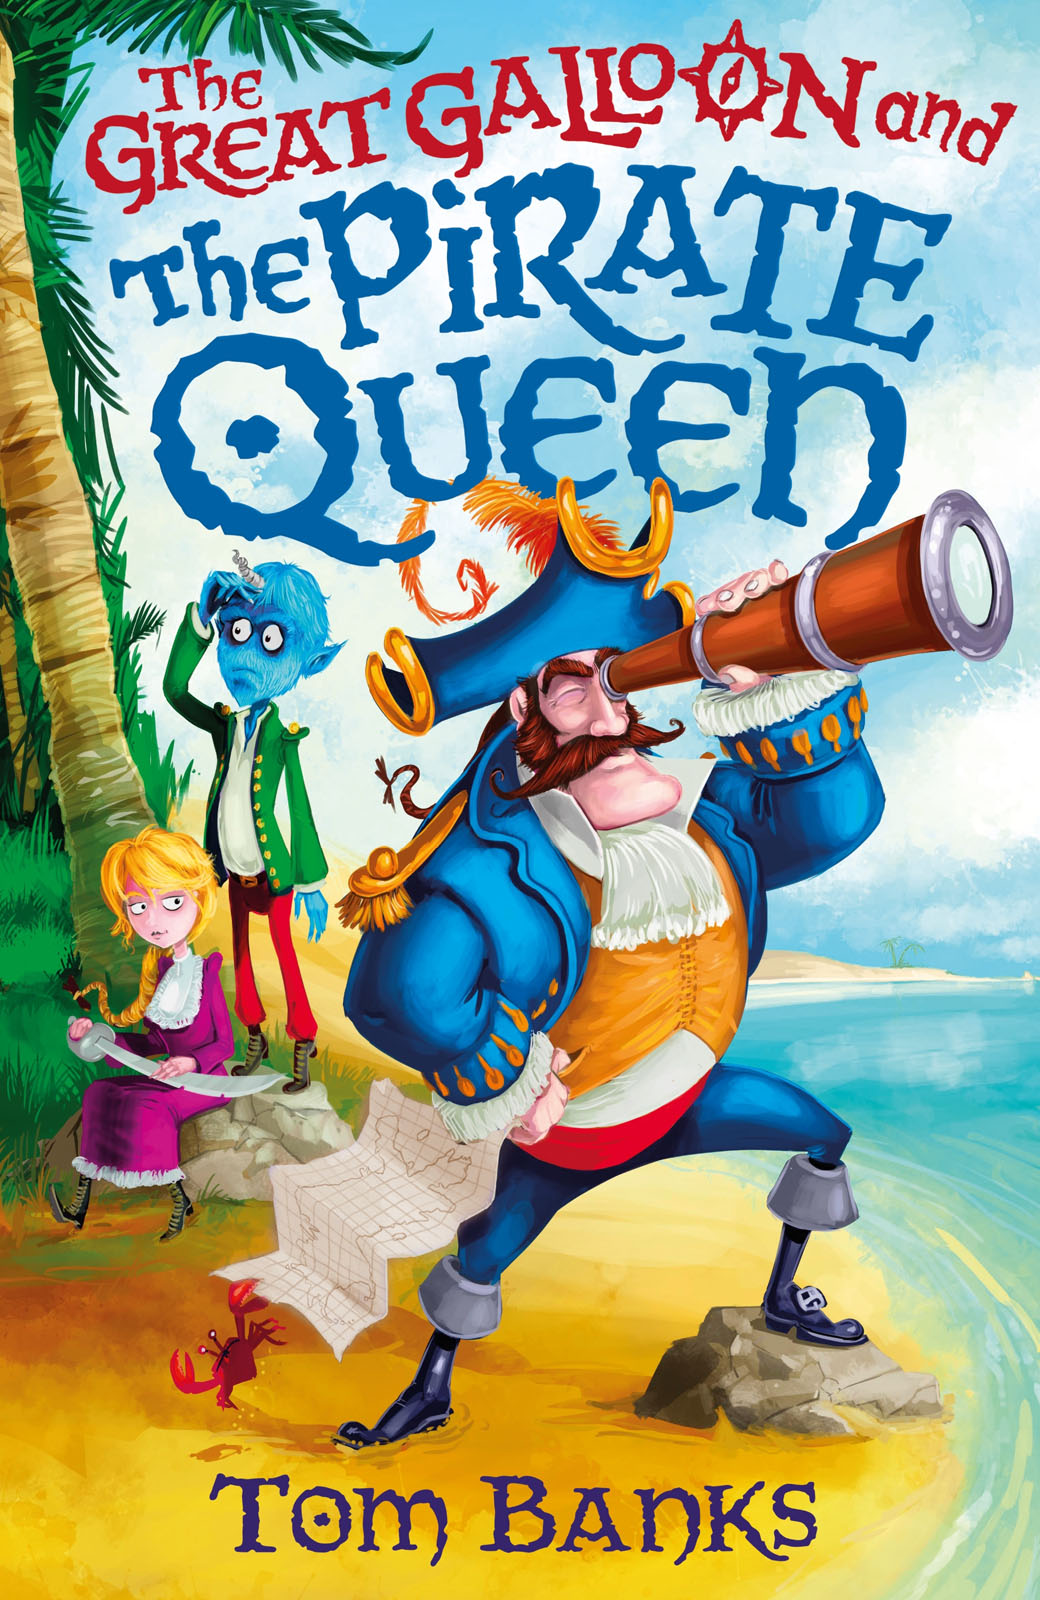 The Great Galloon and the Pirate Queen (2015)